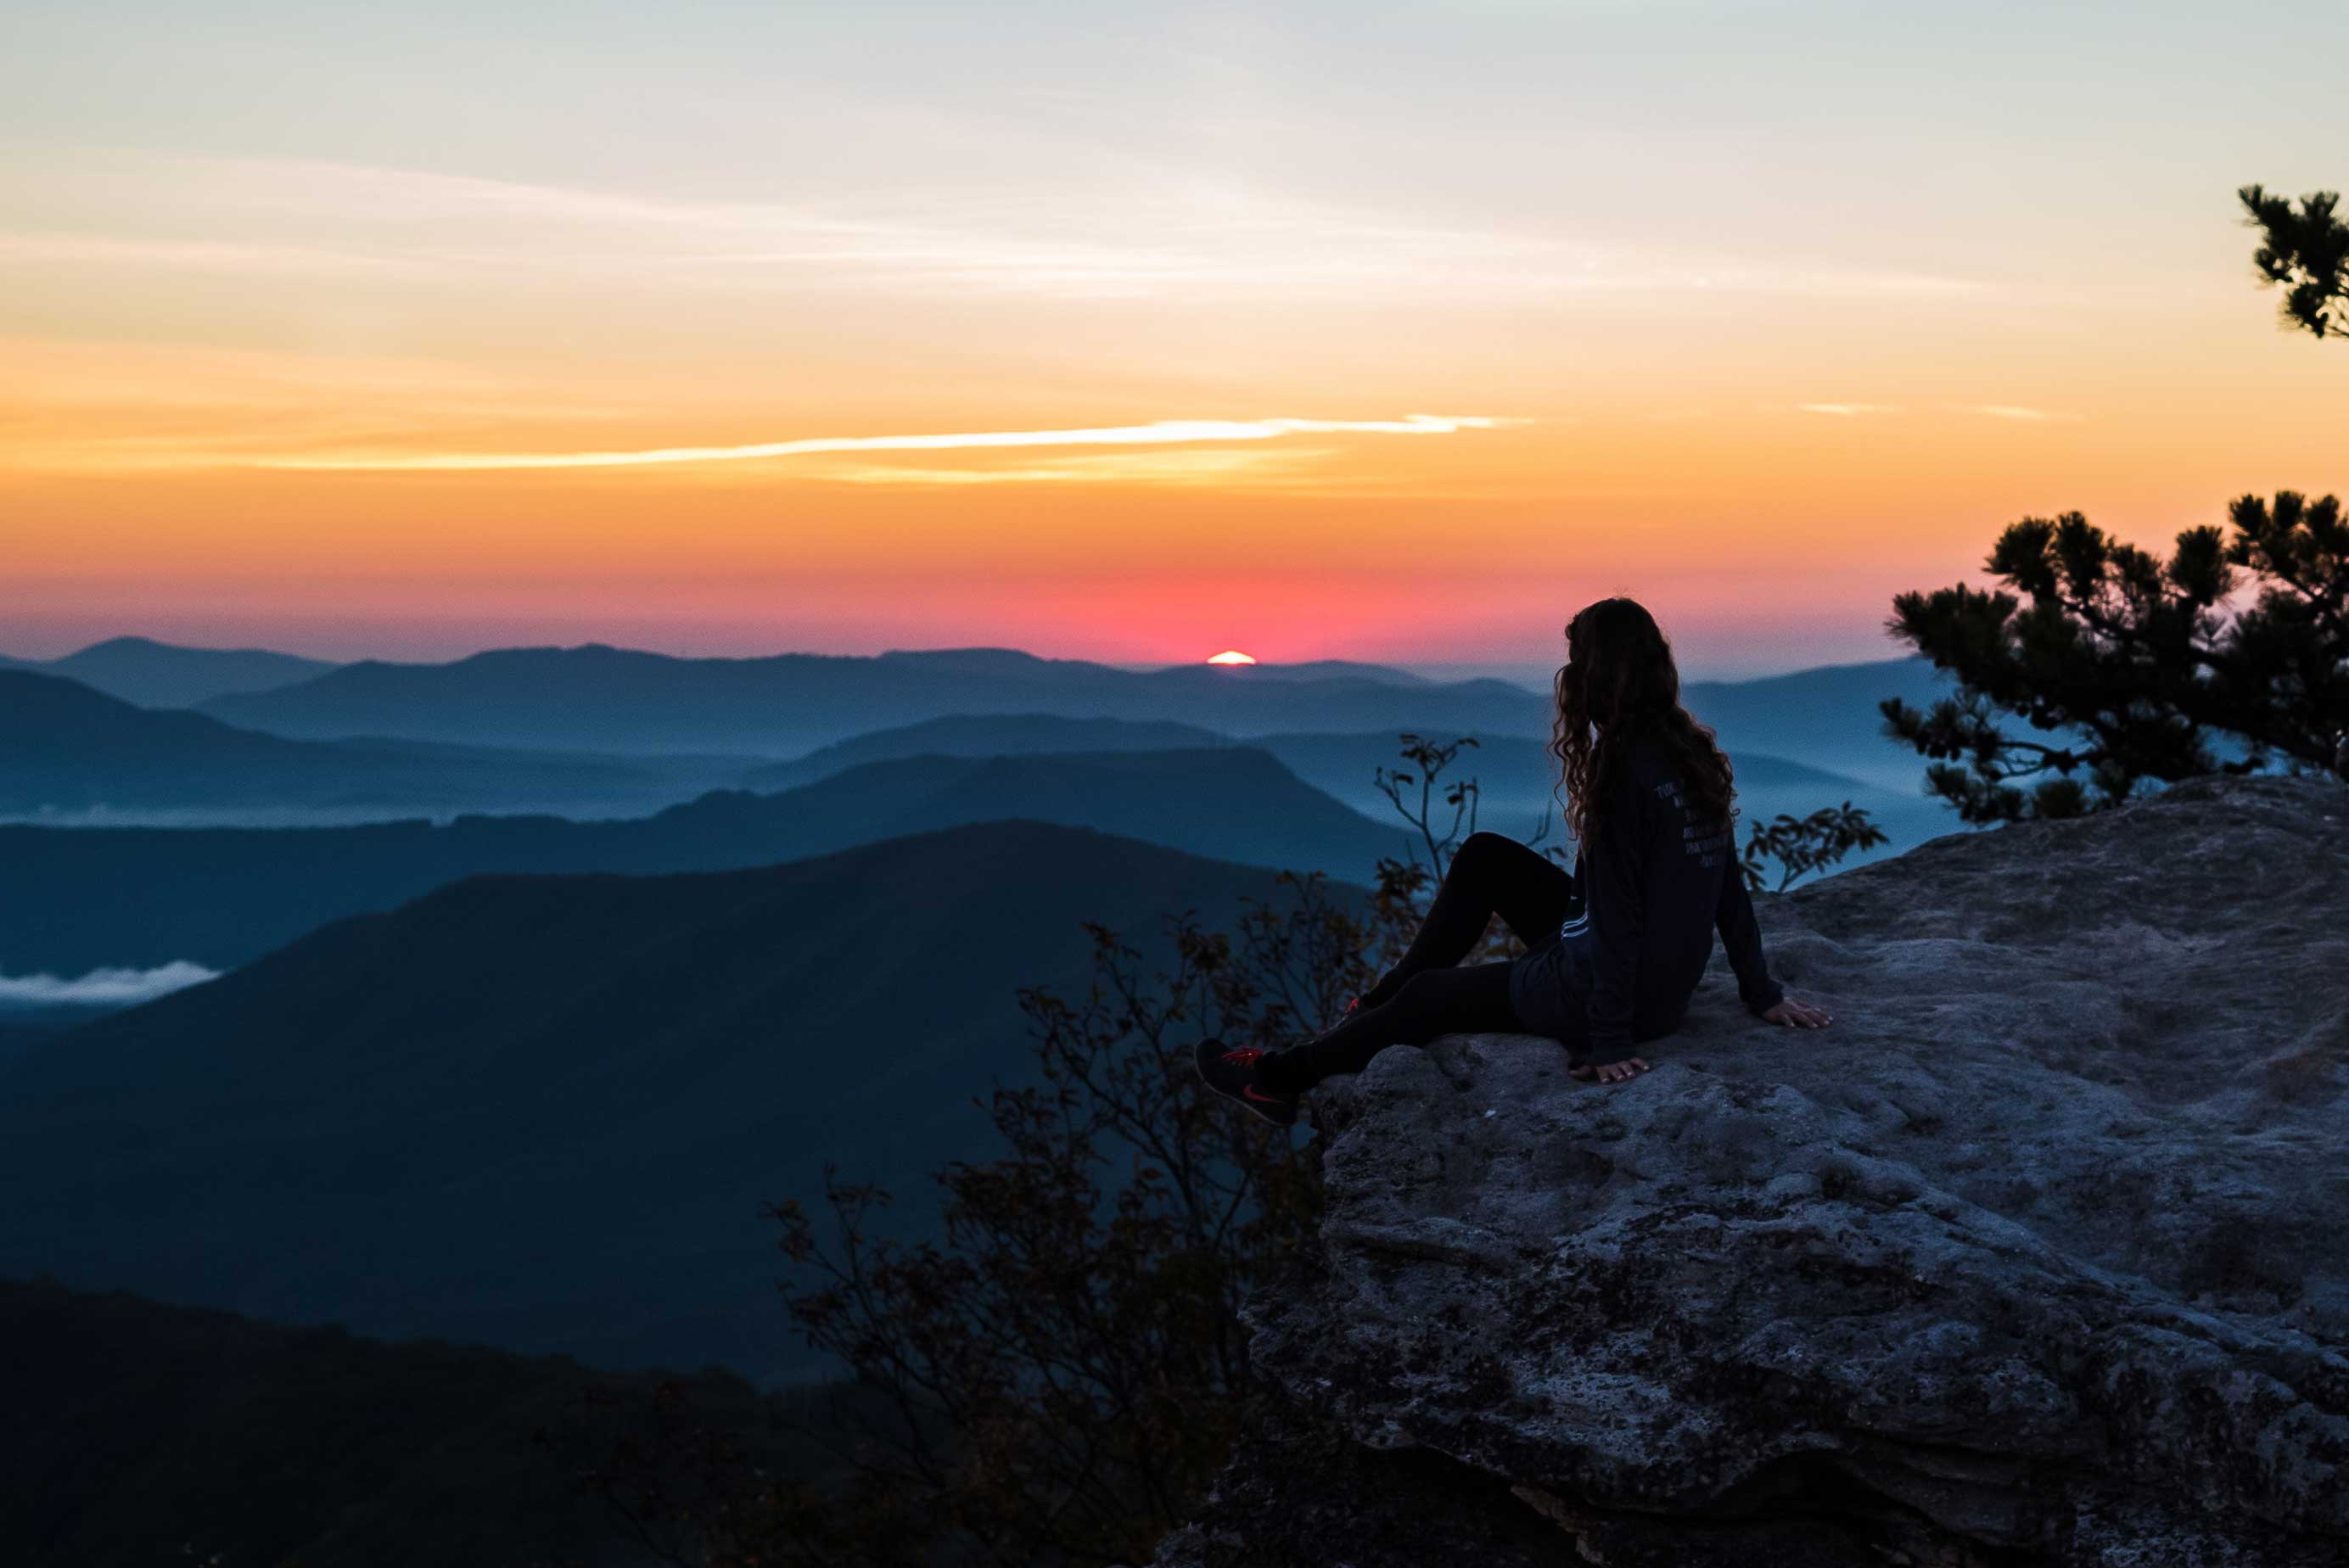 Sitting at the lookout point from McAfee knob